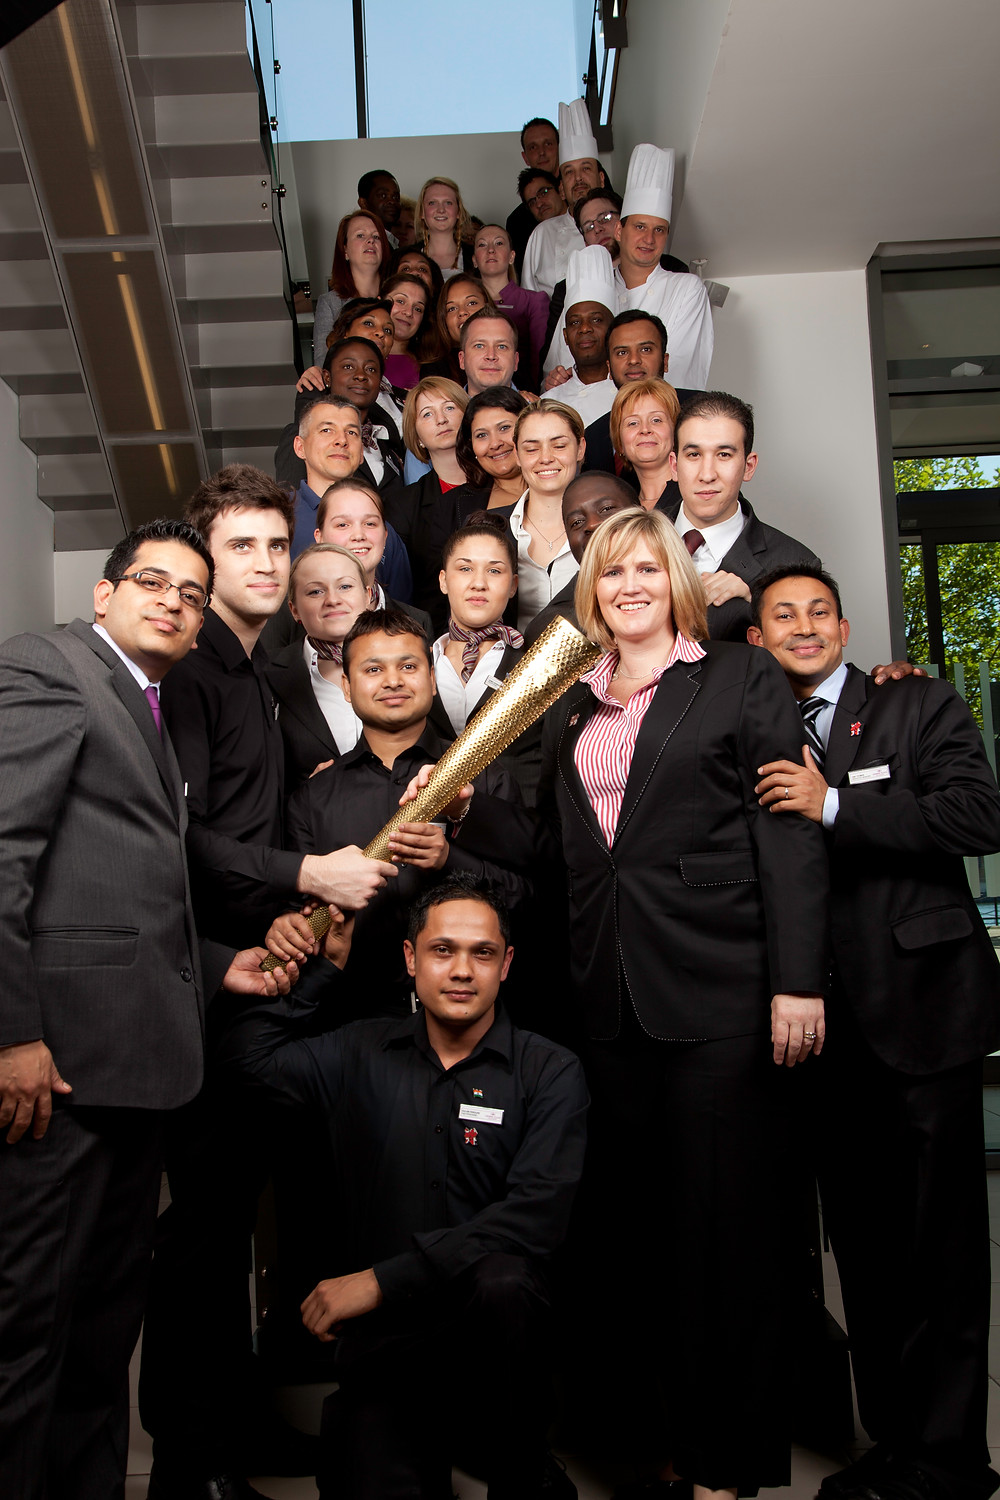 Joanne Taylor-Stagg and her team at the Crowne Plaza Docklands, 2012 with an Olympic torch.